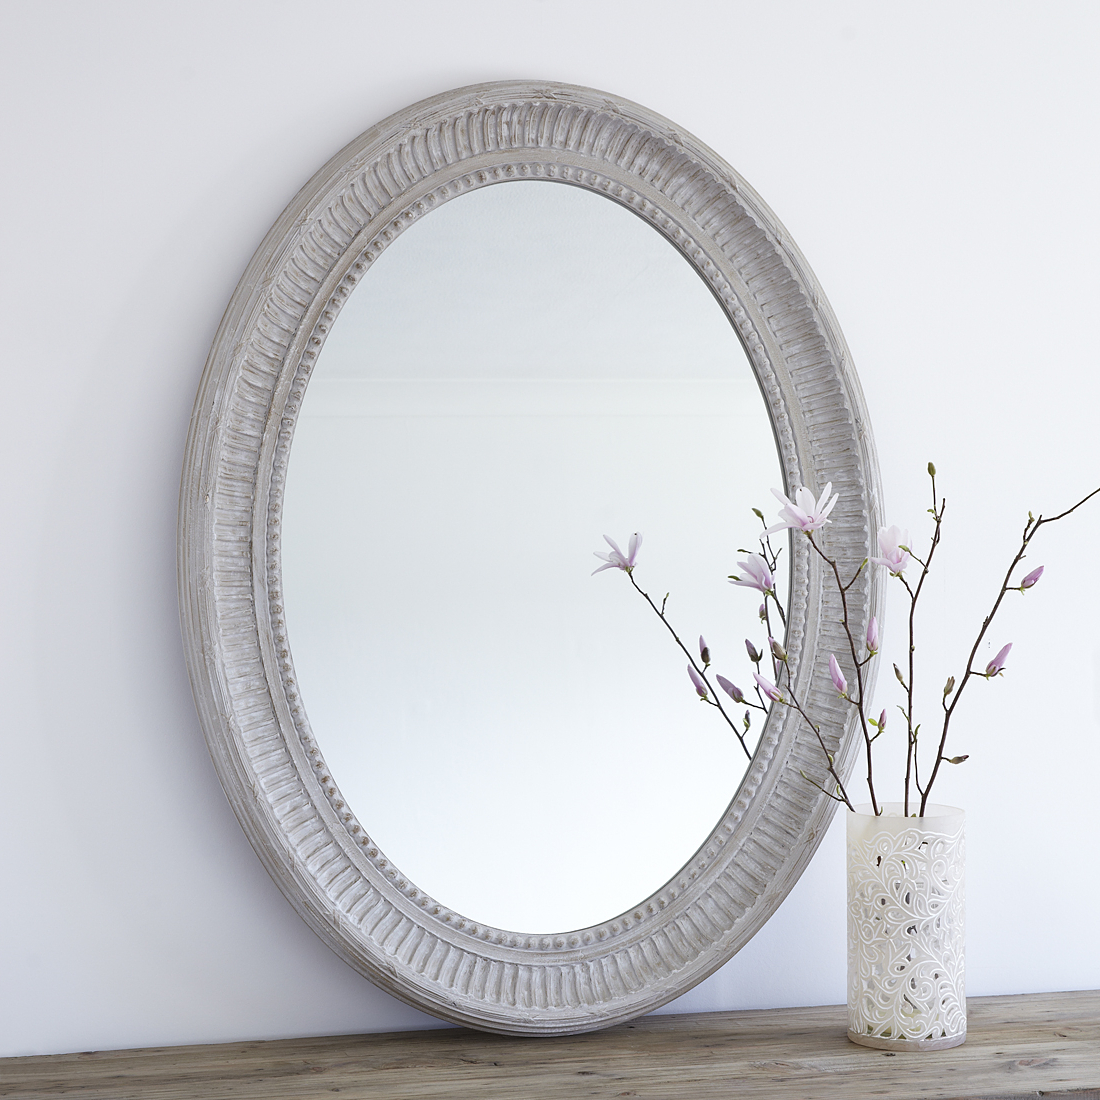 Distressed Wood Wall Mirrors Pertaining To 2020 Large Grey Oval Wooden Wall Mirror (View 12 of 20)